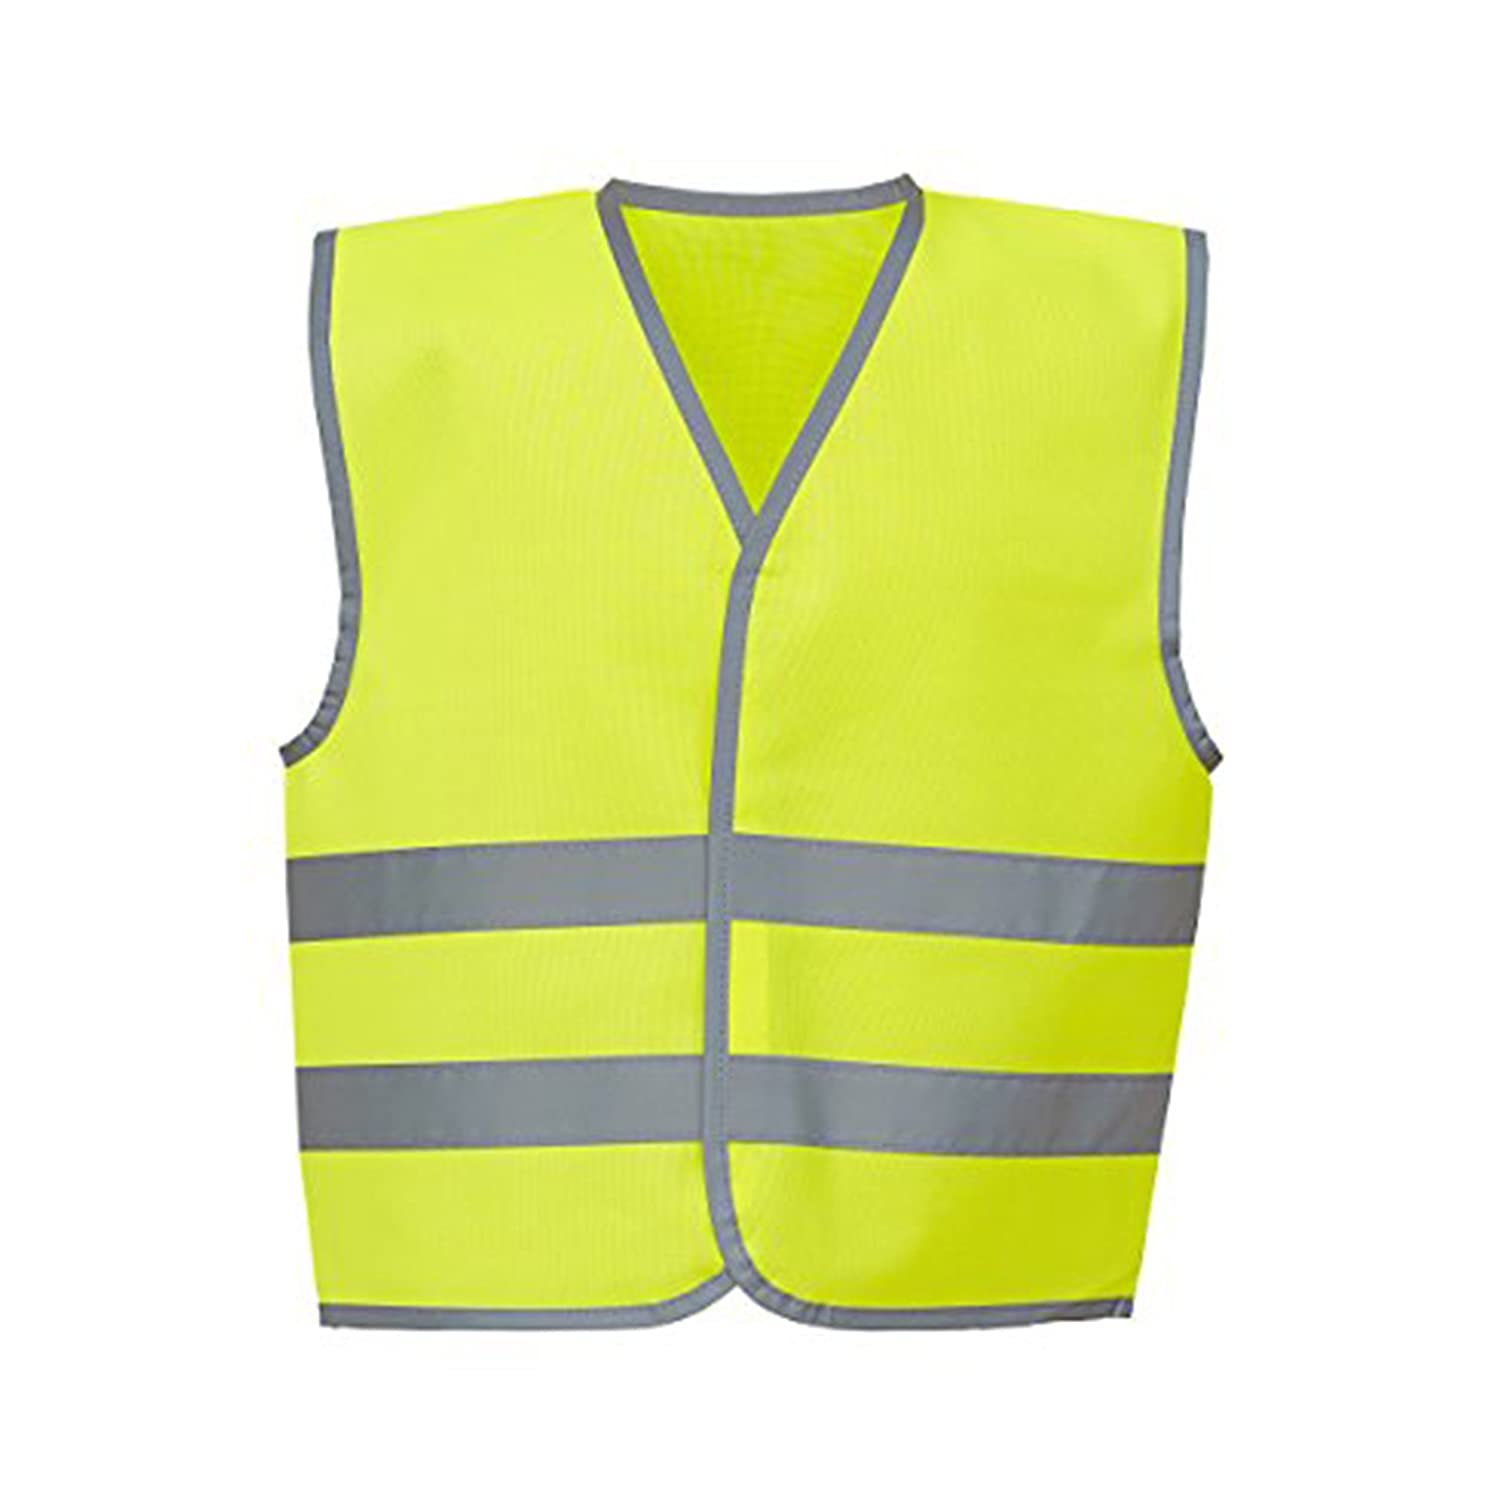 YOKO Hi-vis Reflective Border Kids Waistcoat (HVW102CH) Reflective Border 100% Polyester Fabric with Fastening YK102